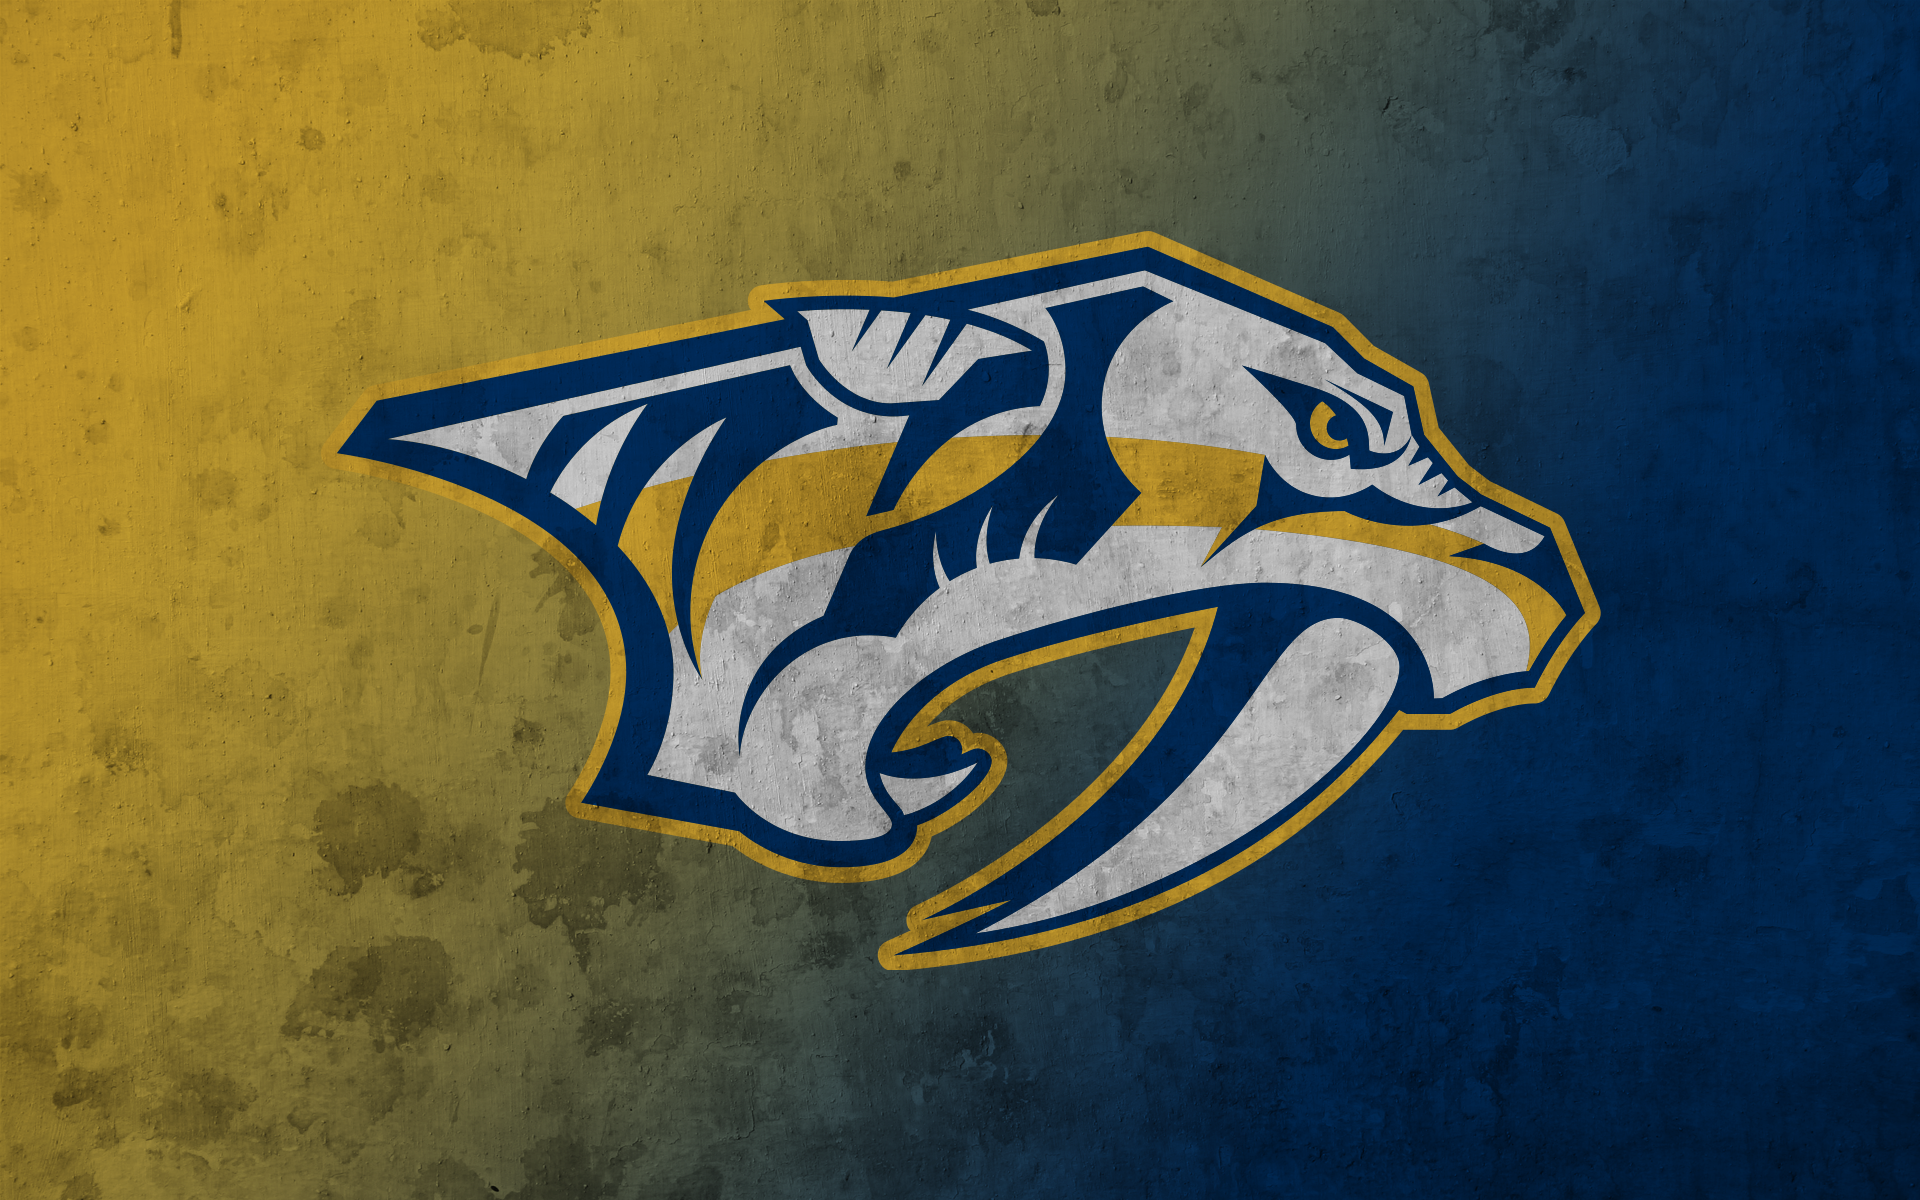 Wallpapers Of The Day: Predators | 1920x1200 Predators Wallpapers